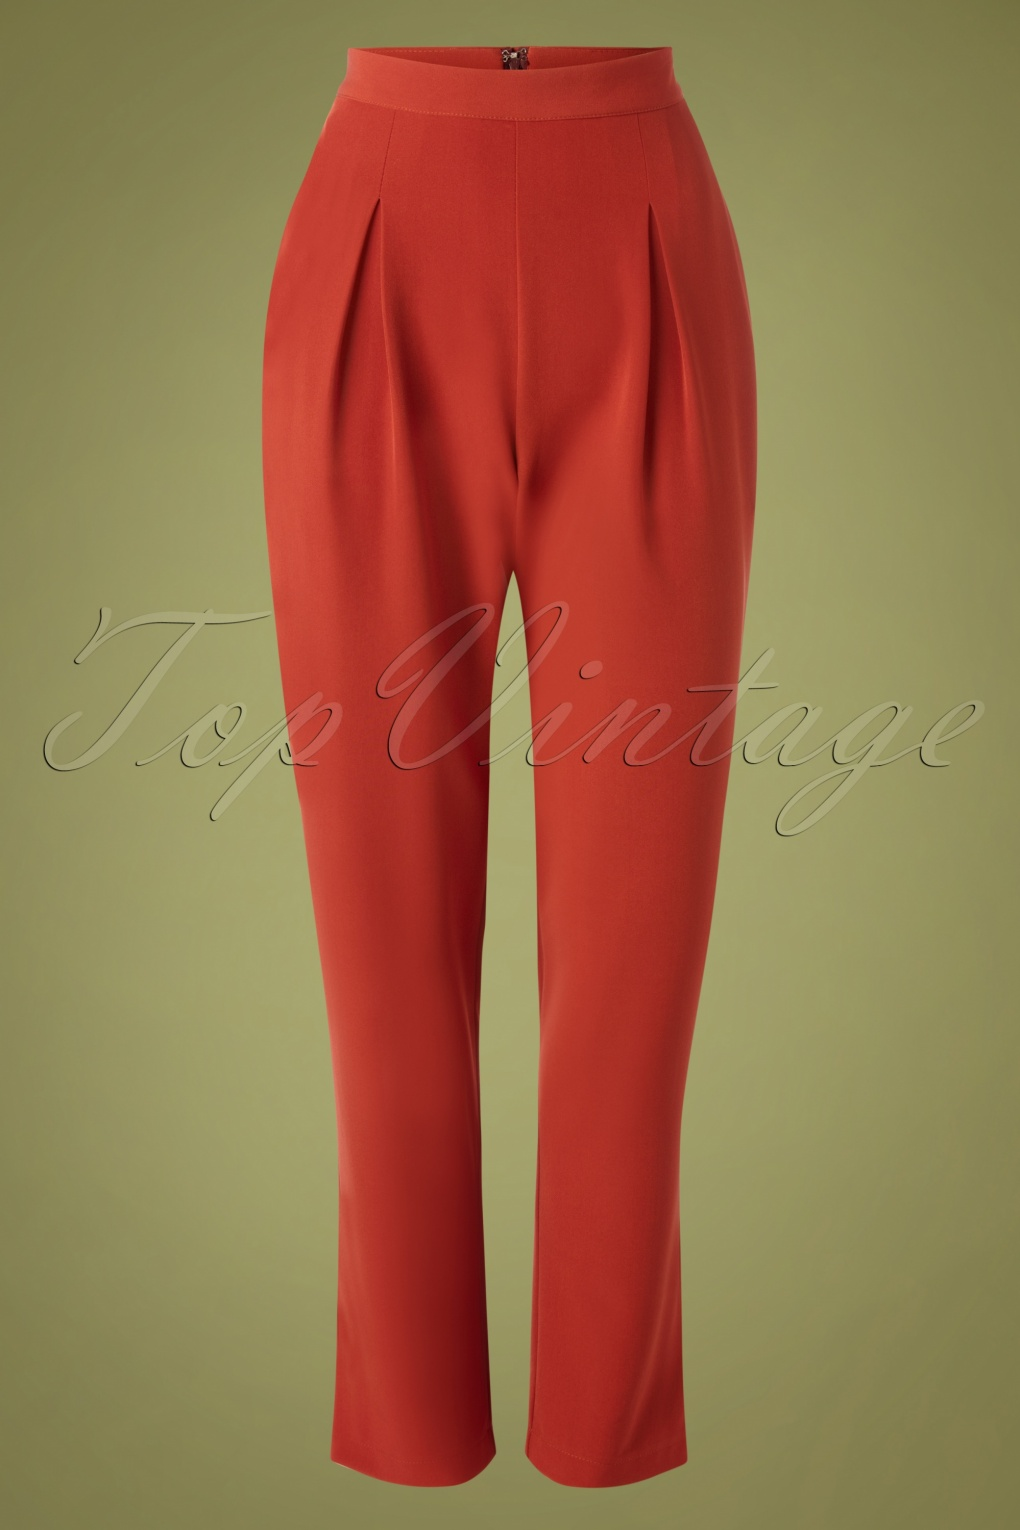 60s Dresses & 60s Style Dresses UK 50s Wear Me Everywhere Trousers in Brick Orange £30.35 AT vintagedancer.com